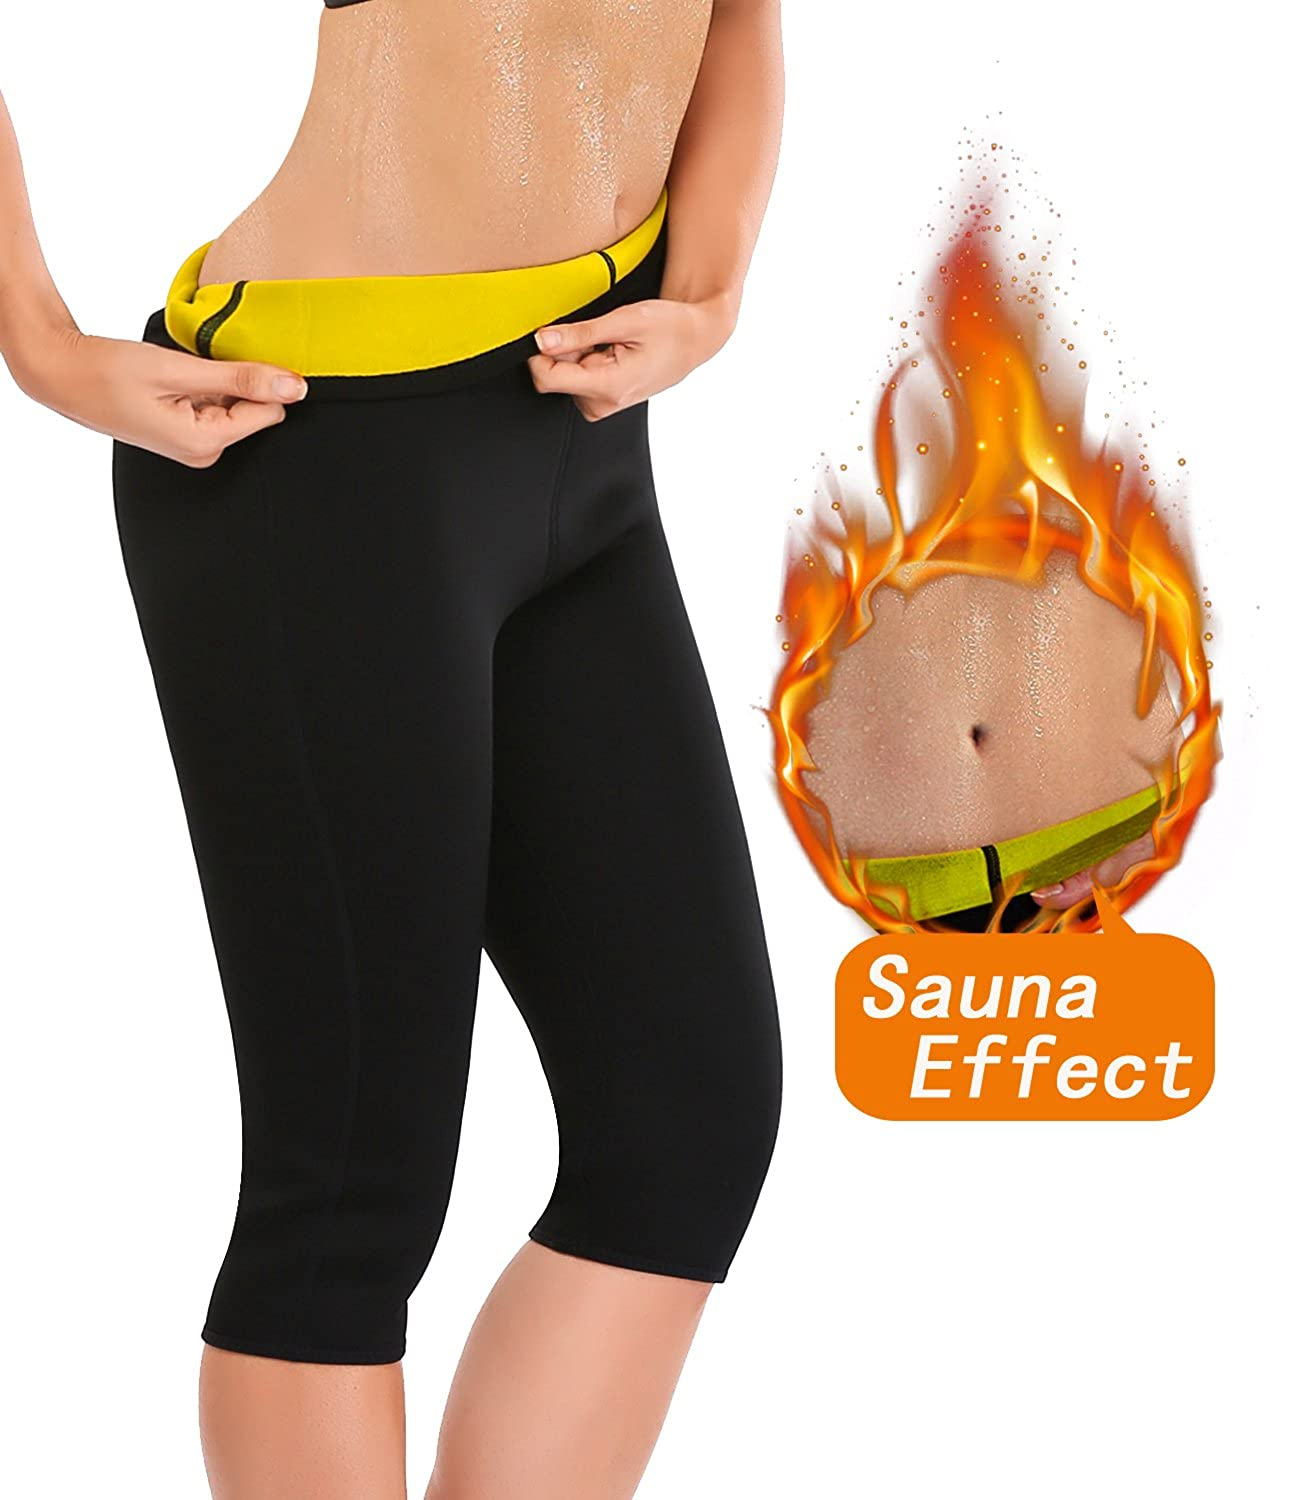 LAZAWG Slimming Sauna Sweat Pants Neoprene Hot Thermo Capri Workout Body Shaper CA041LAZAWG